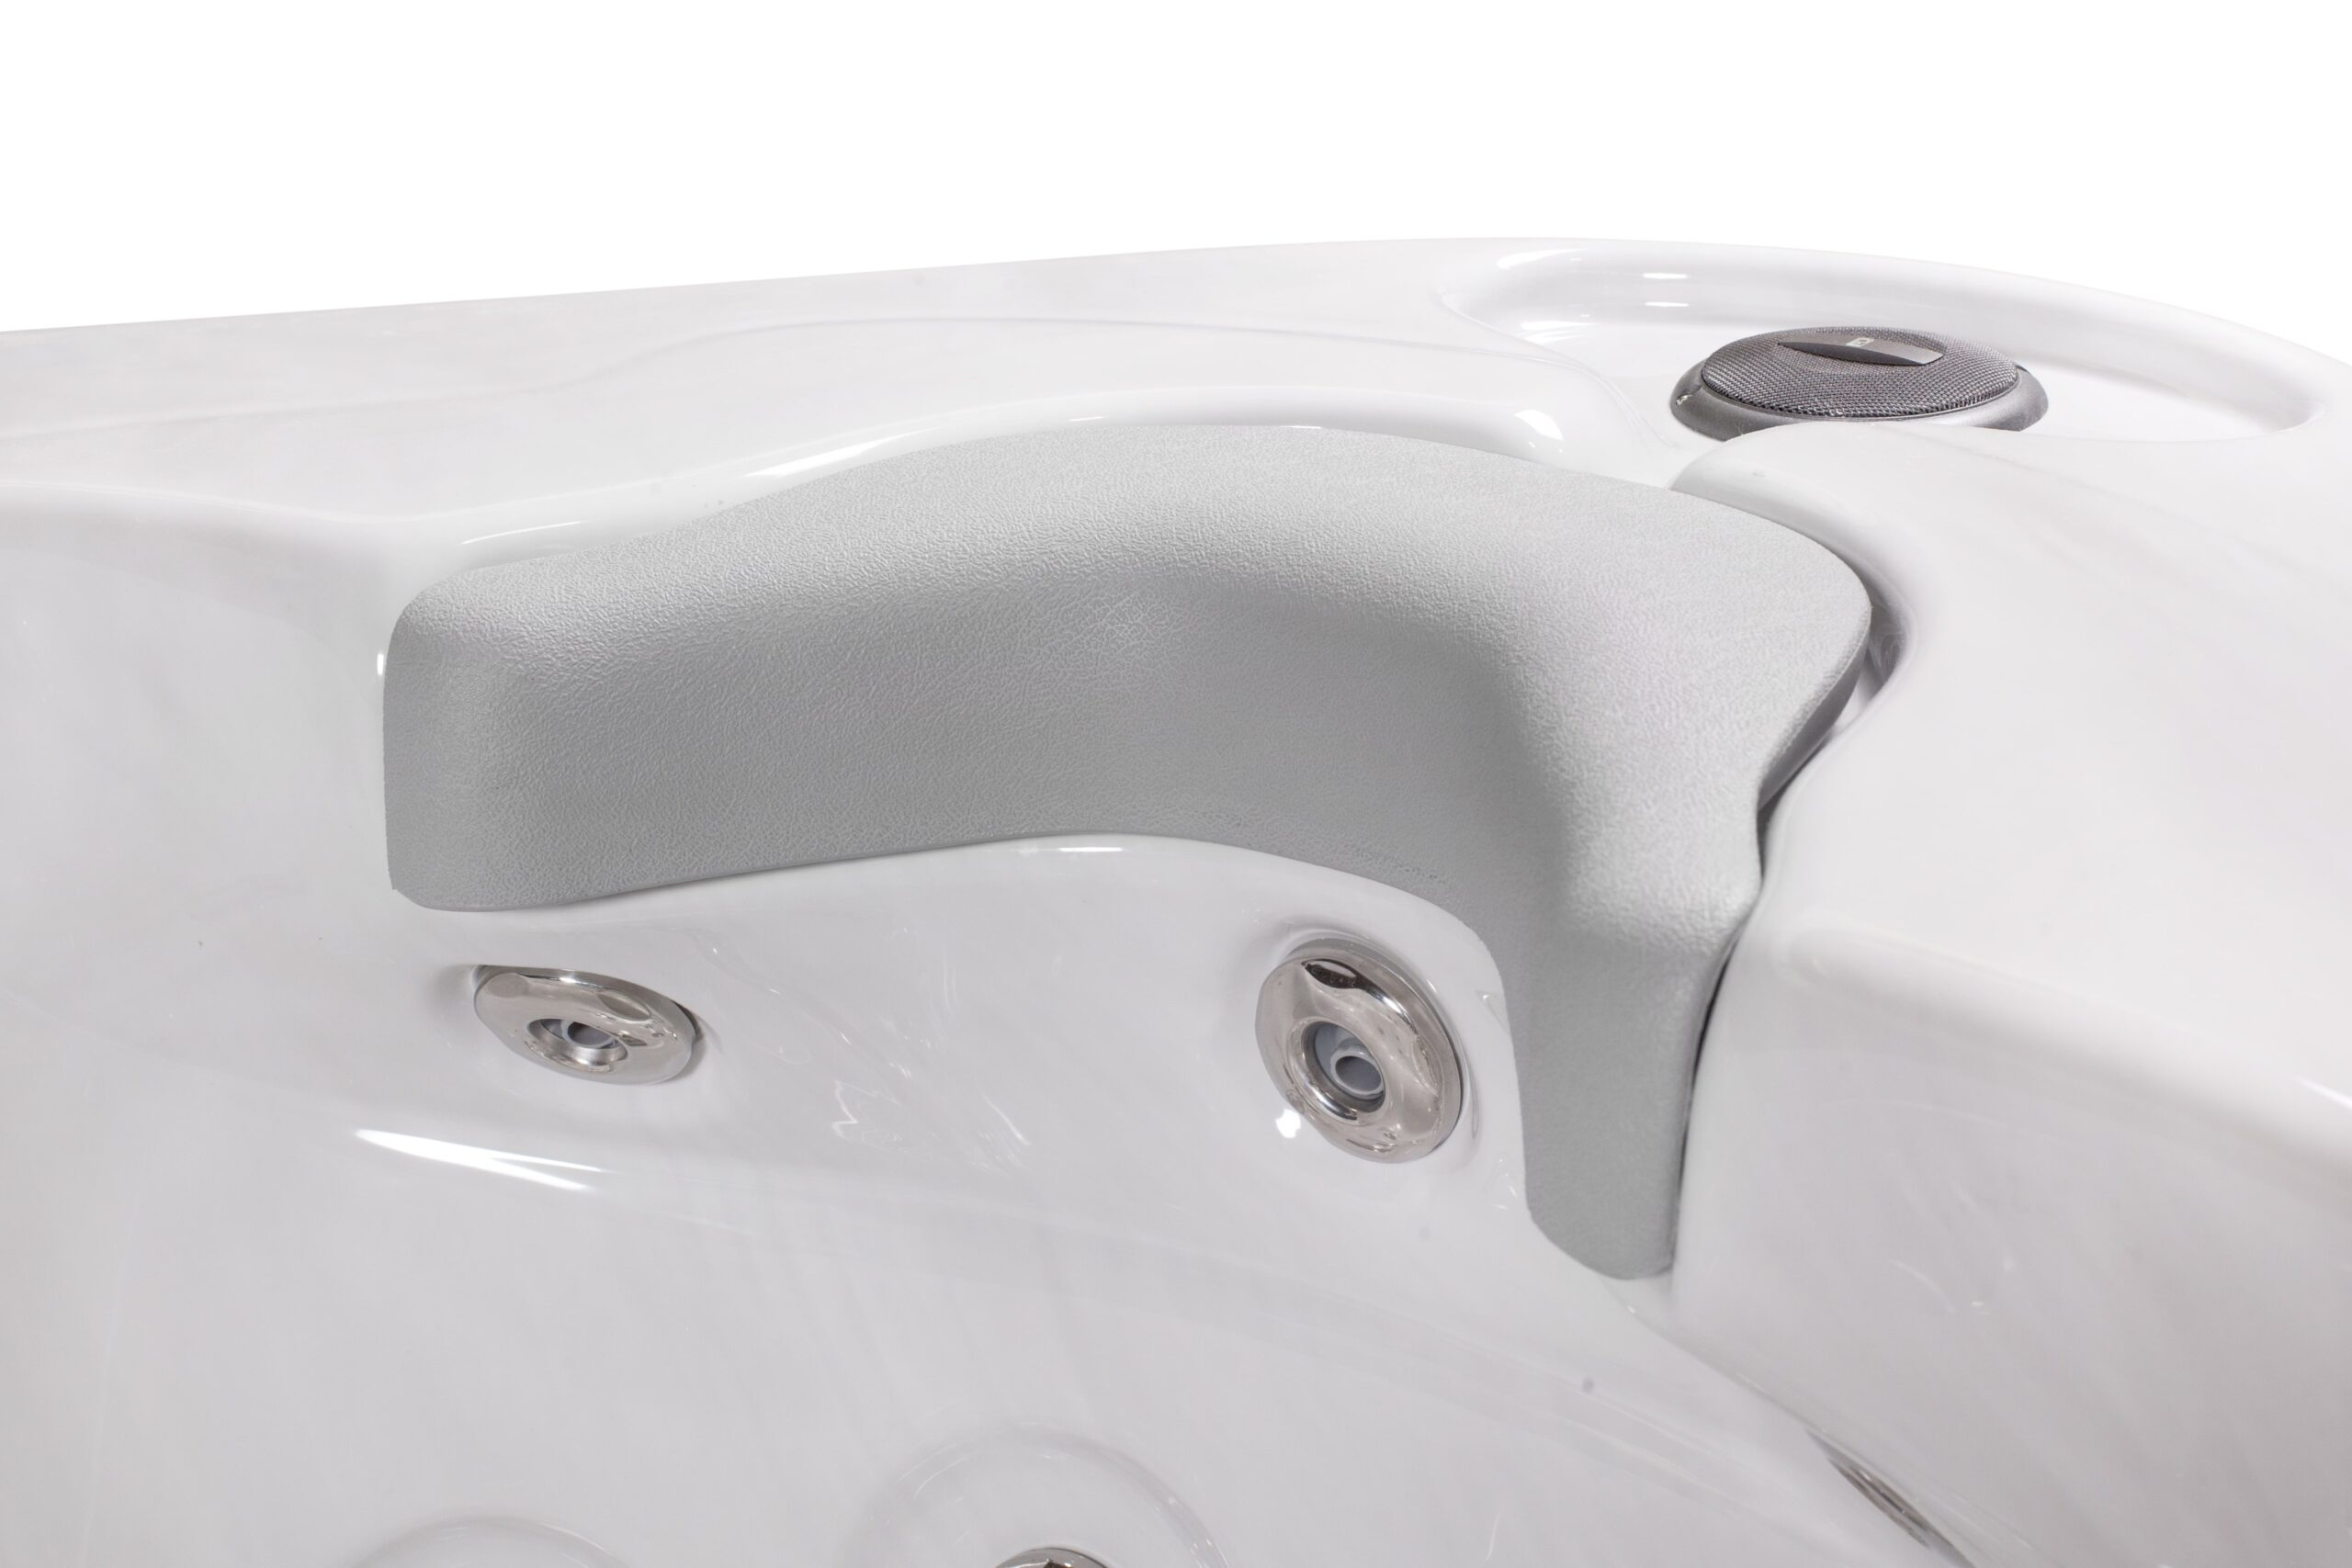 Hydrotherapy hot tub jets for joint paint